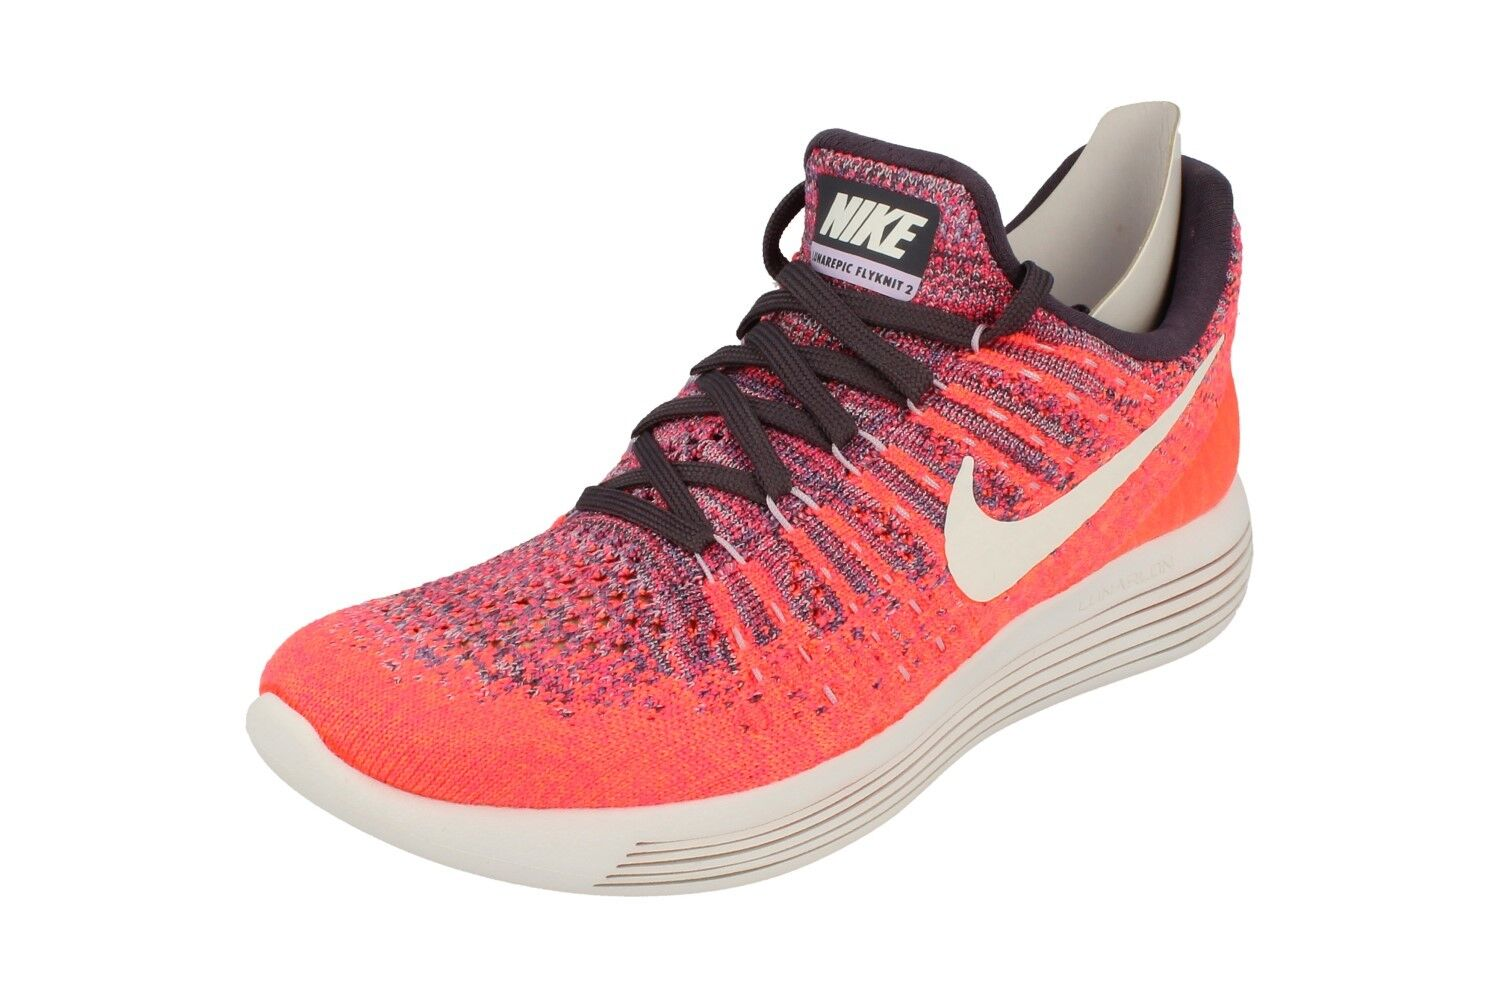 Nike Womens Lunarepic Low Flyknit 2 Running Tr780 Sneakers Shoes 500